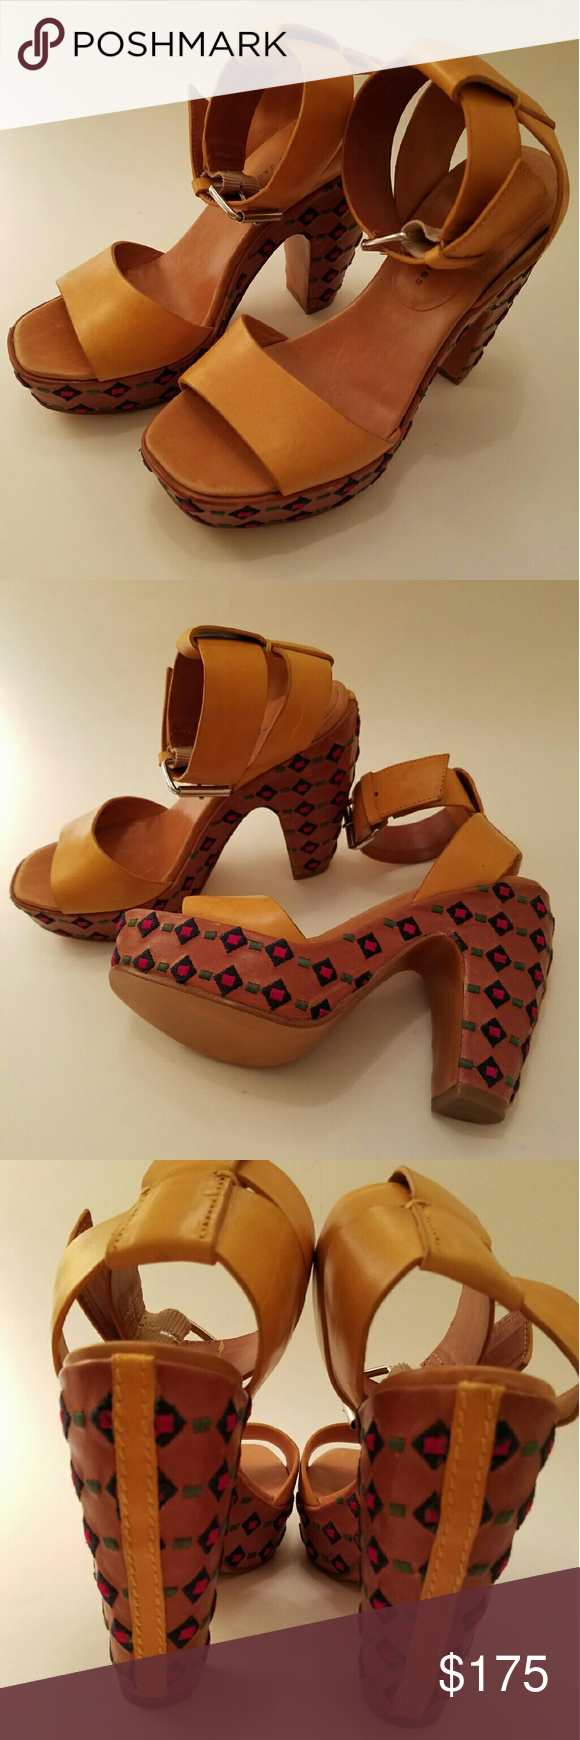 Marc by Marc Jacobs Platform Sandals Beautiful pair of Marc Jacobs leather sandals.  Gorgeous honey colored leather straps with red, blue and green embroidered detailing on the soles.  These are new without tags and have never been worn.  This item is listed twice to show more details. Marc by Marc Jacobs Shoes Platforms